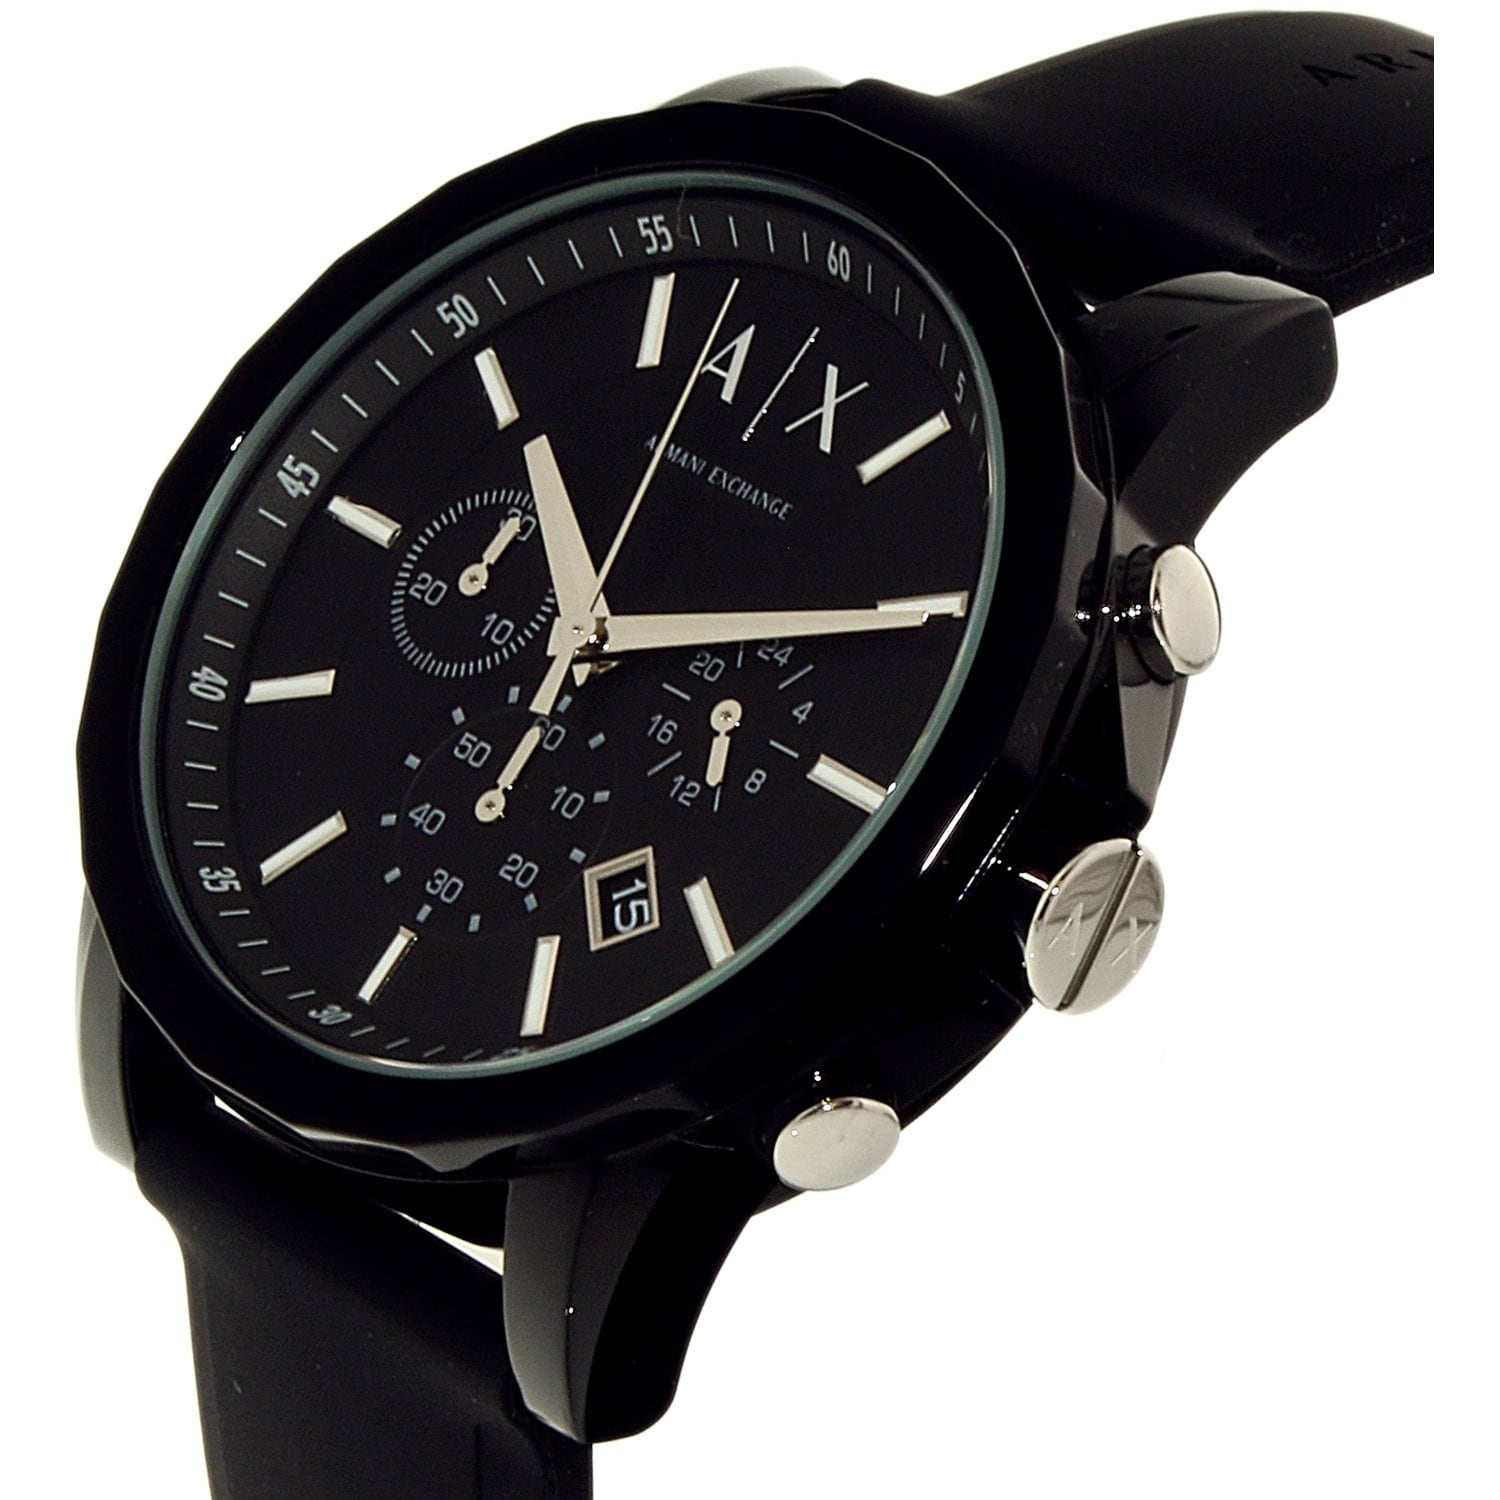 Shop Armani Exchange Men s Black Silicone Japanese Quartz Dress Watch -  Free Shipping Today - Overstock - 18729720 304b9ae96e